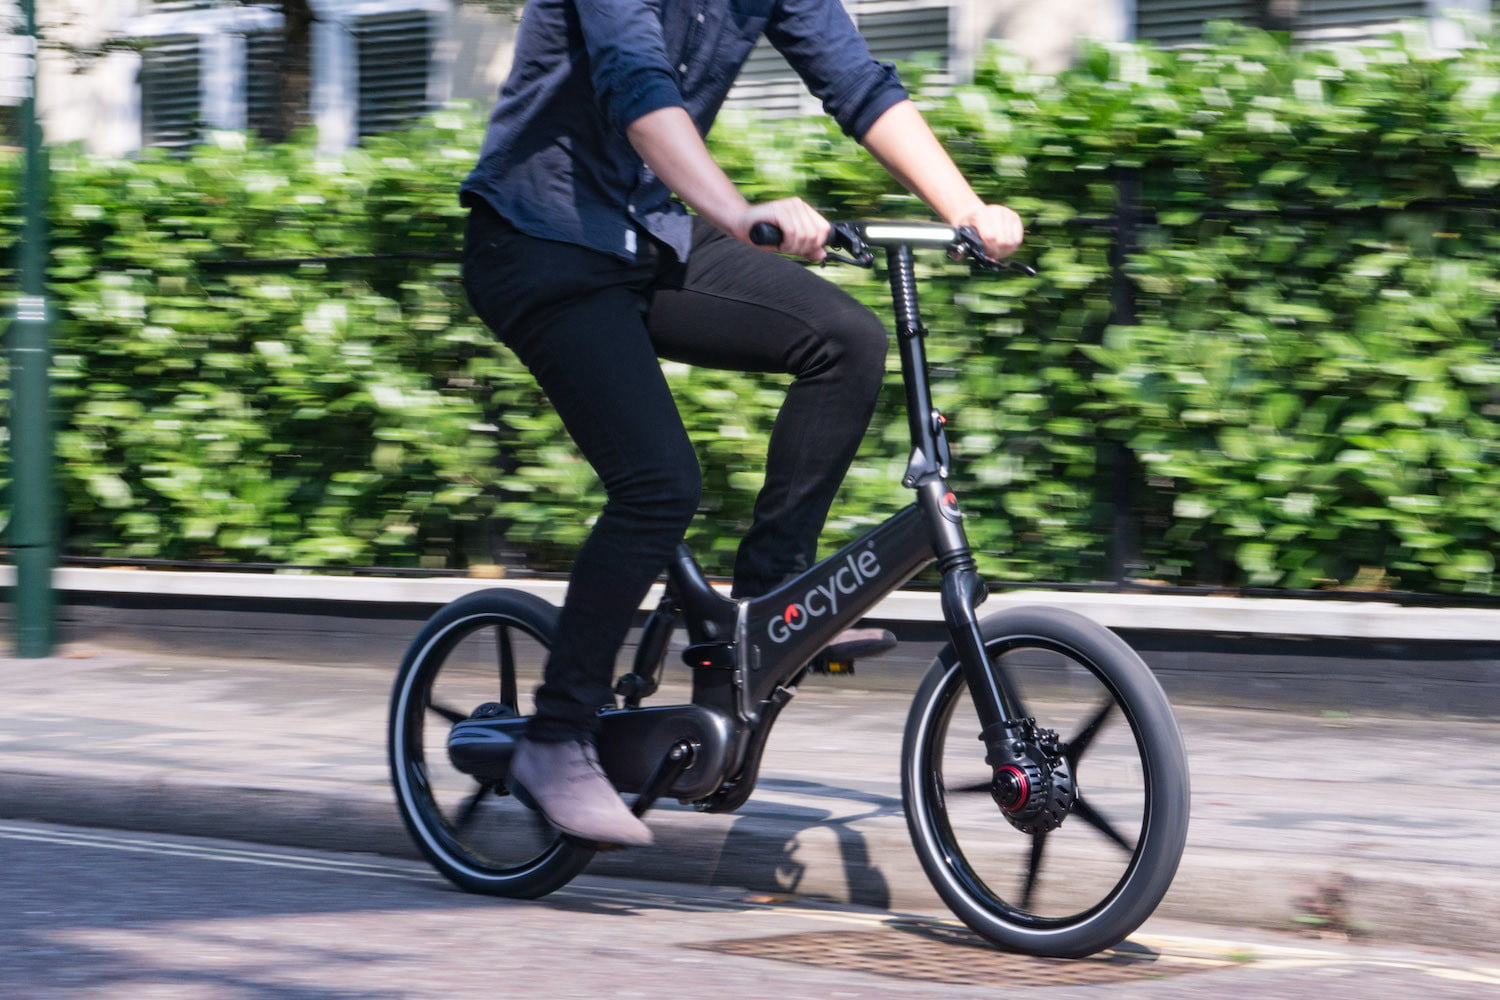 gocycles new gxi electric bike can fold away in a mere 10 seconds gocycle 7